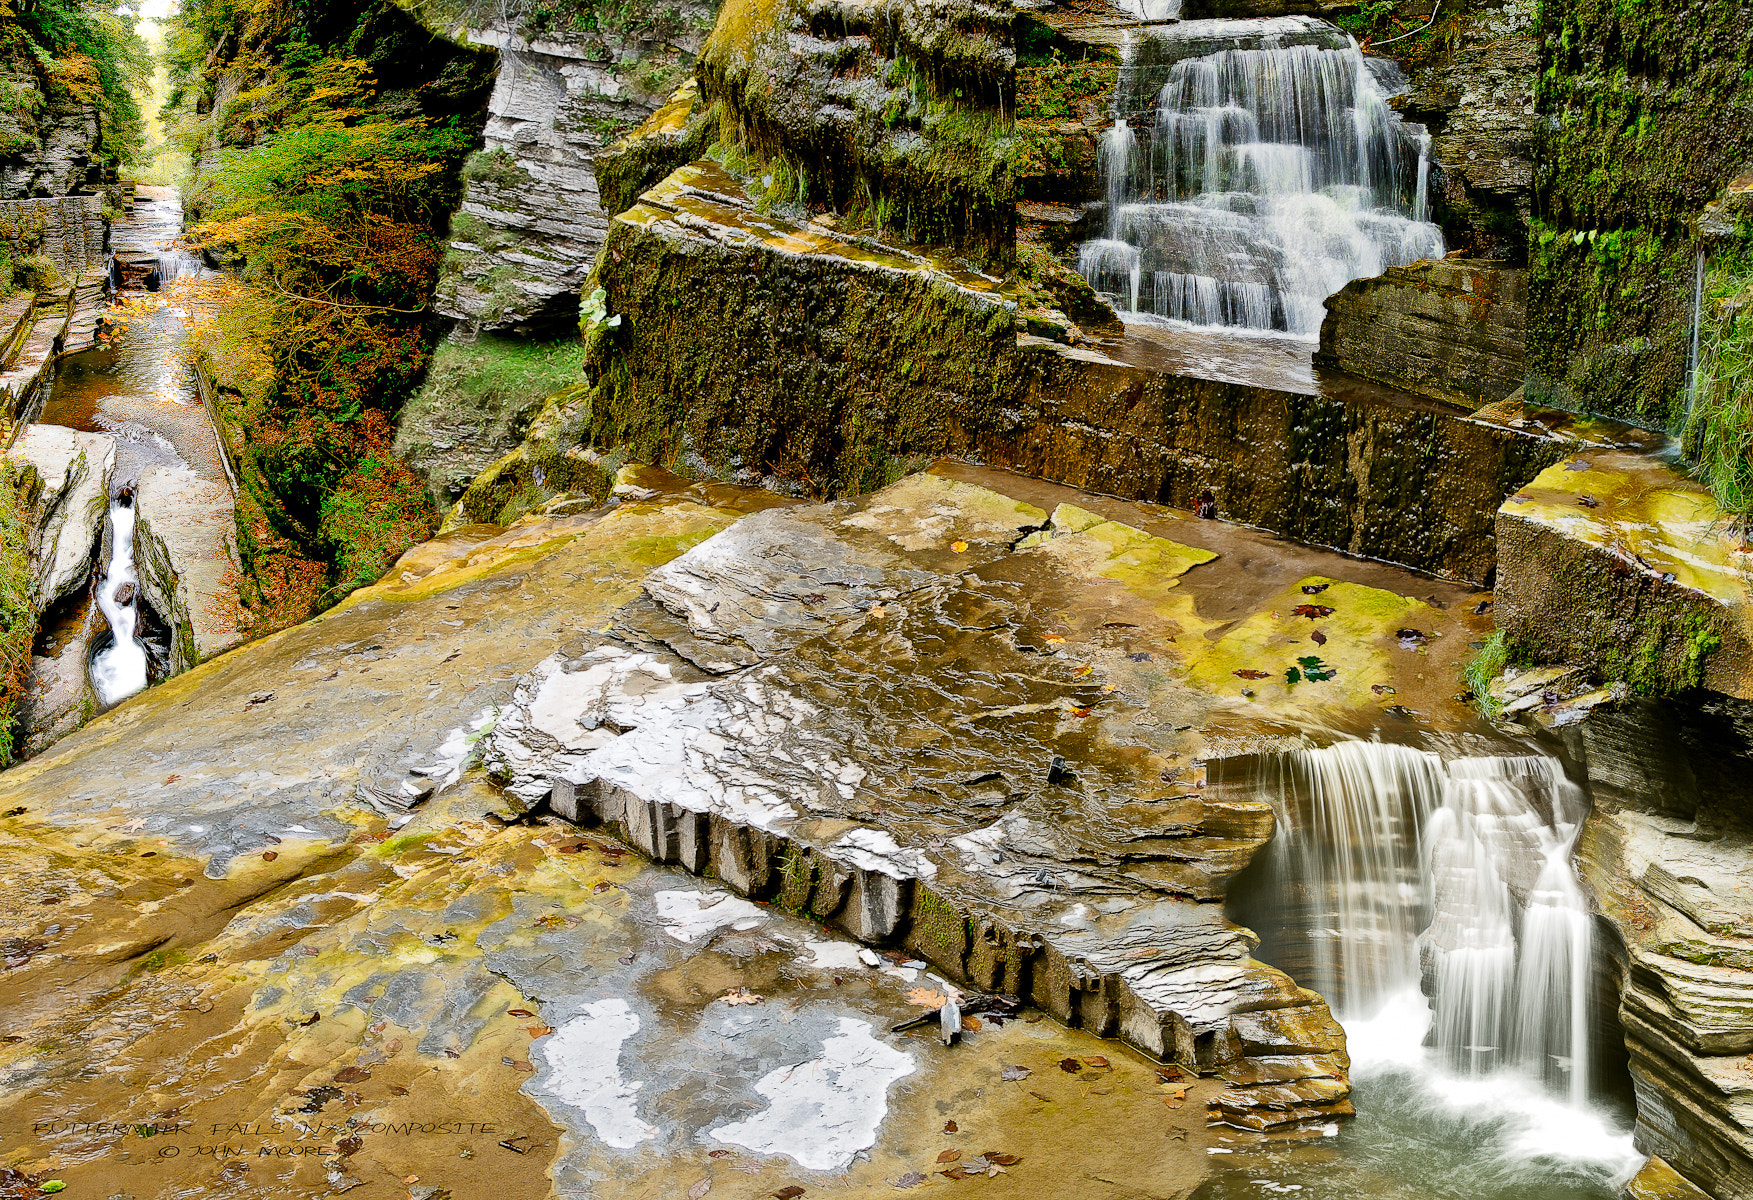 Photograph Buttermilk Falls NY Composite by John Moore on 500px